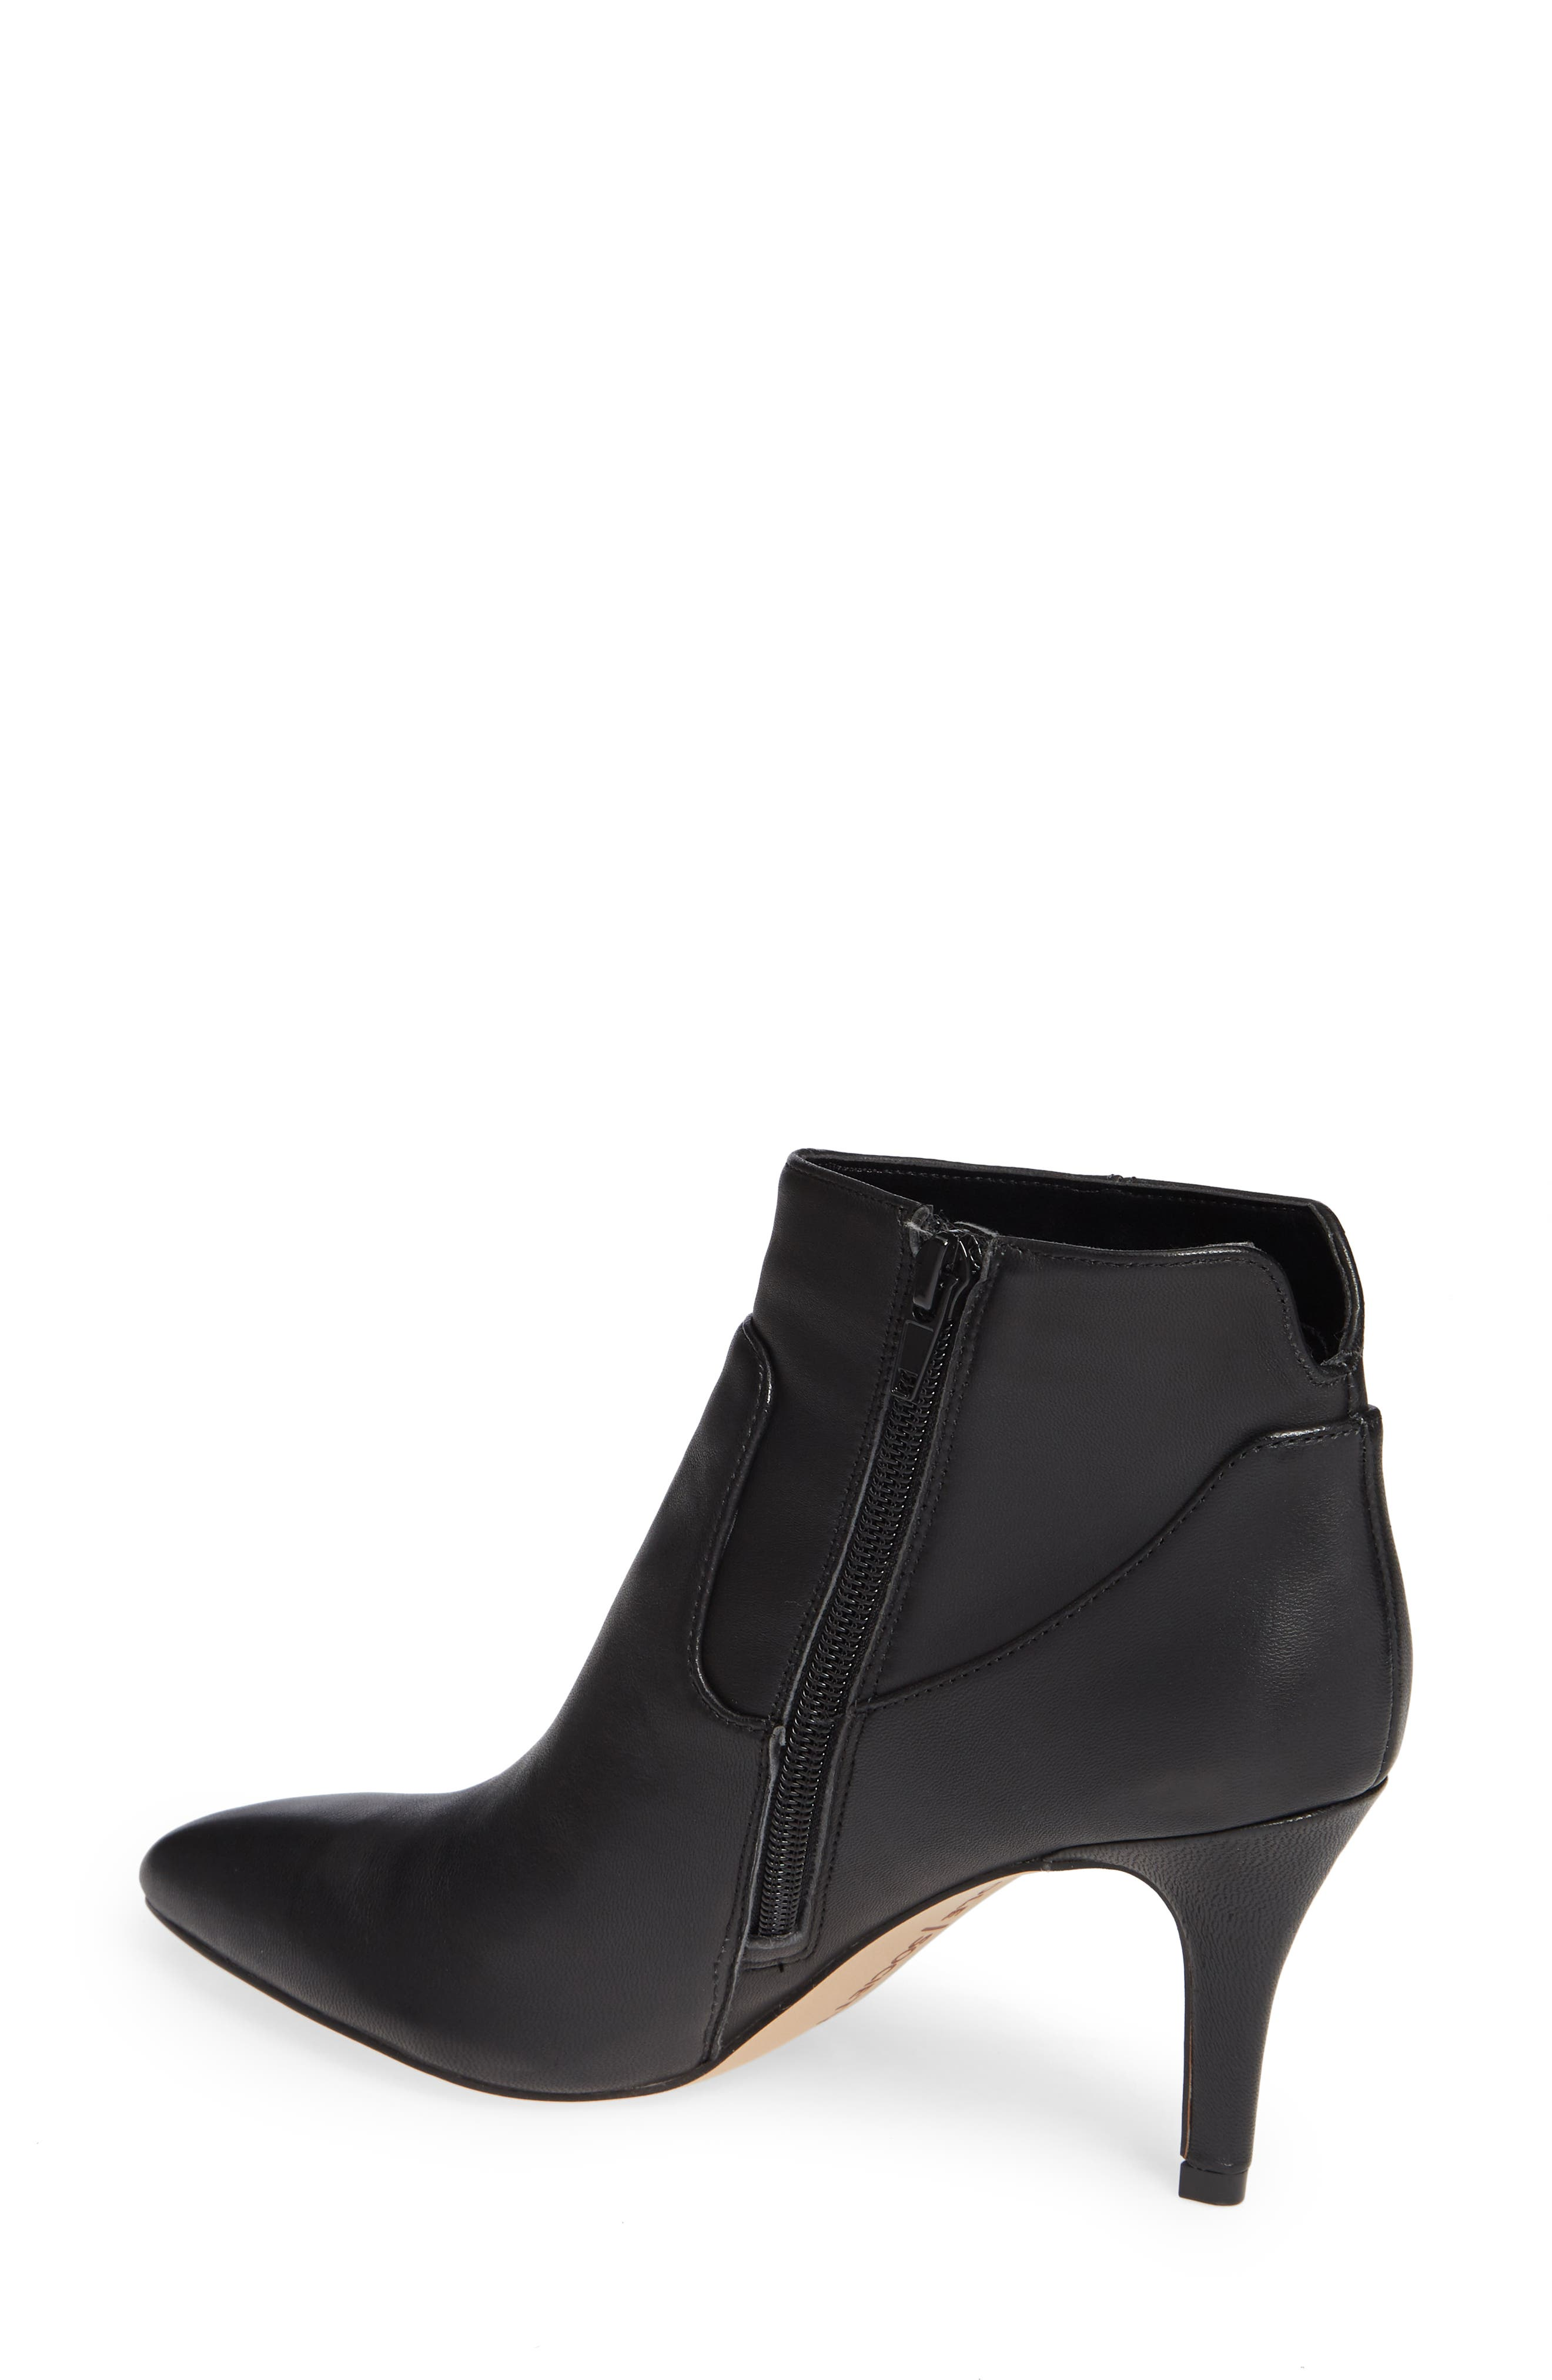 Raphaela Bootie,                             Alternate thumbnail 2, color,                             BLACK LEATHER